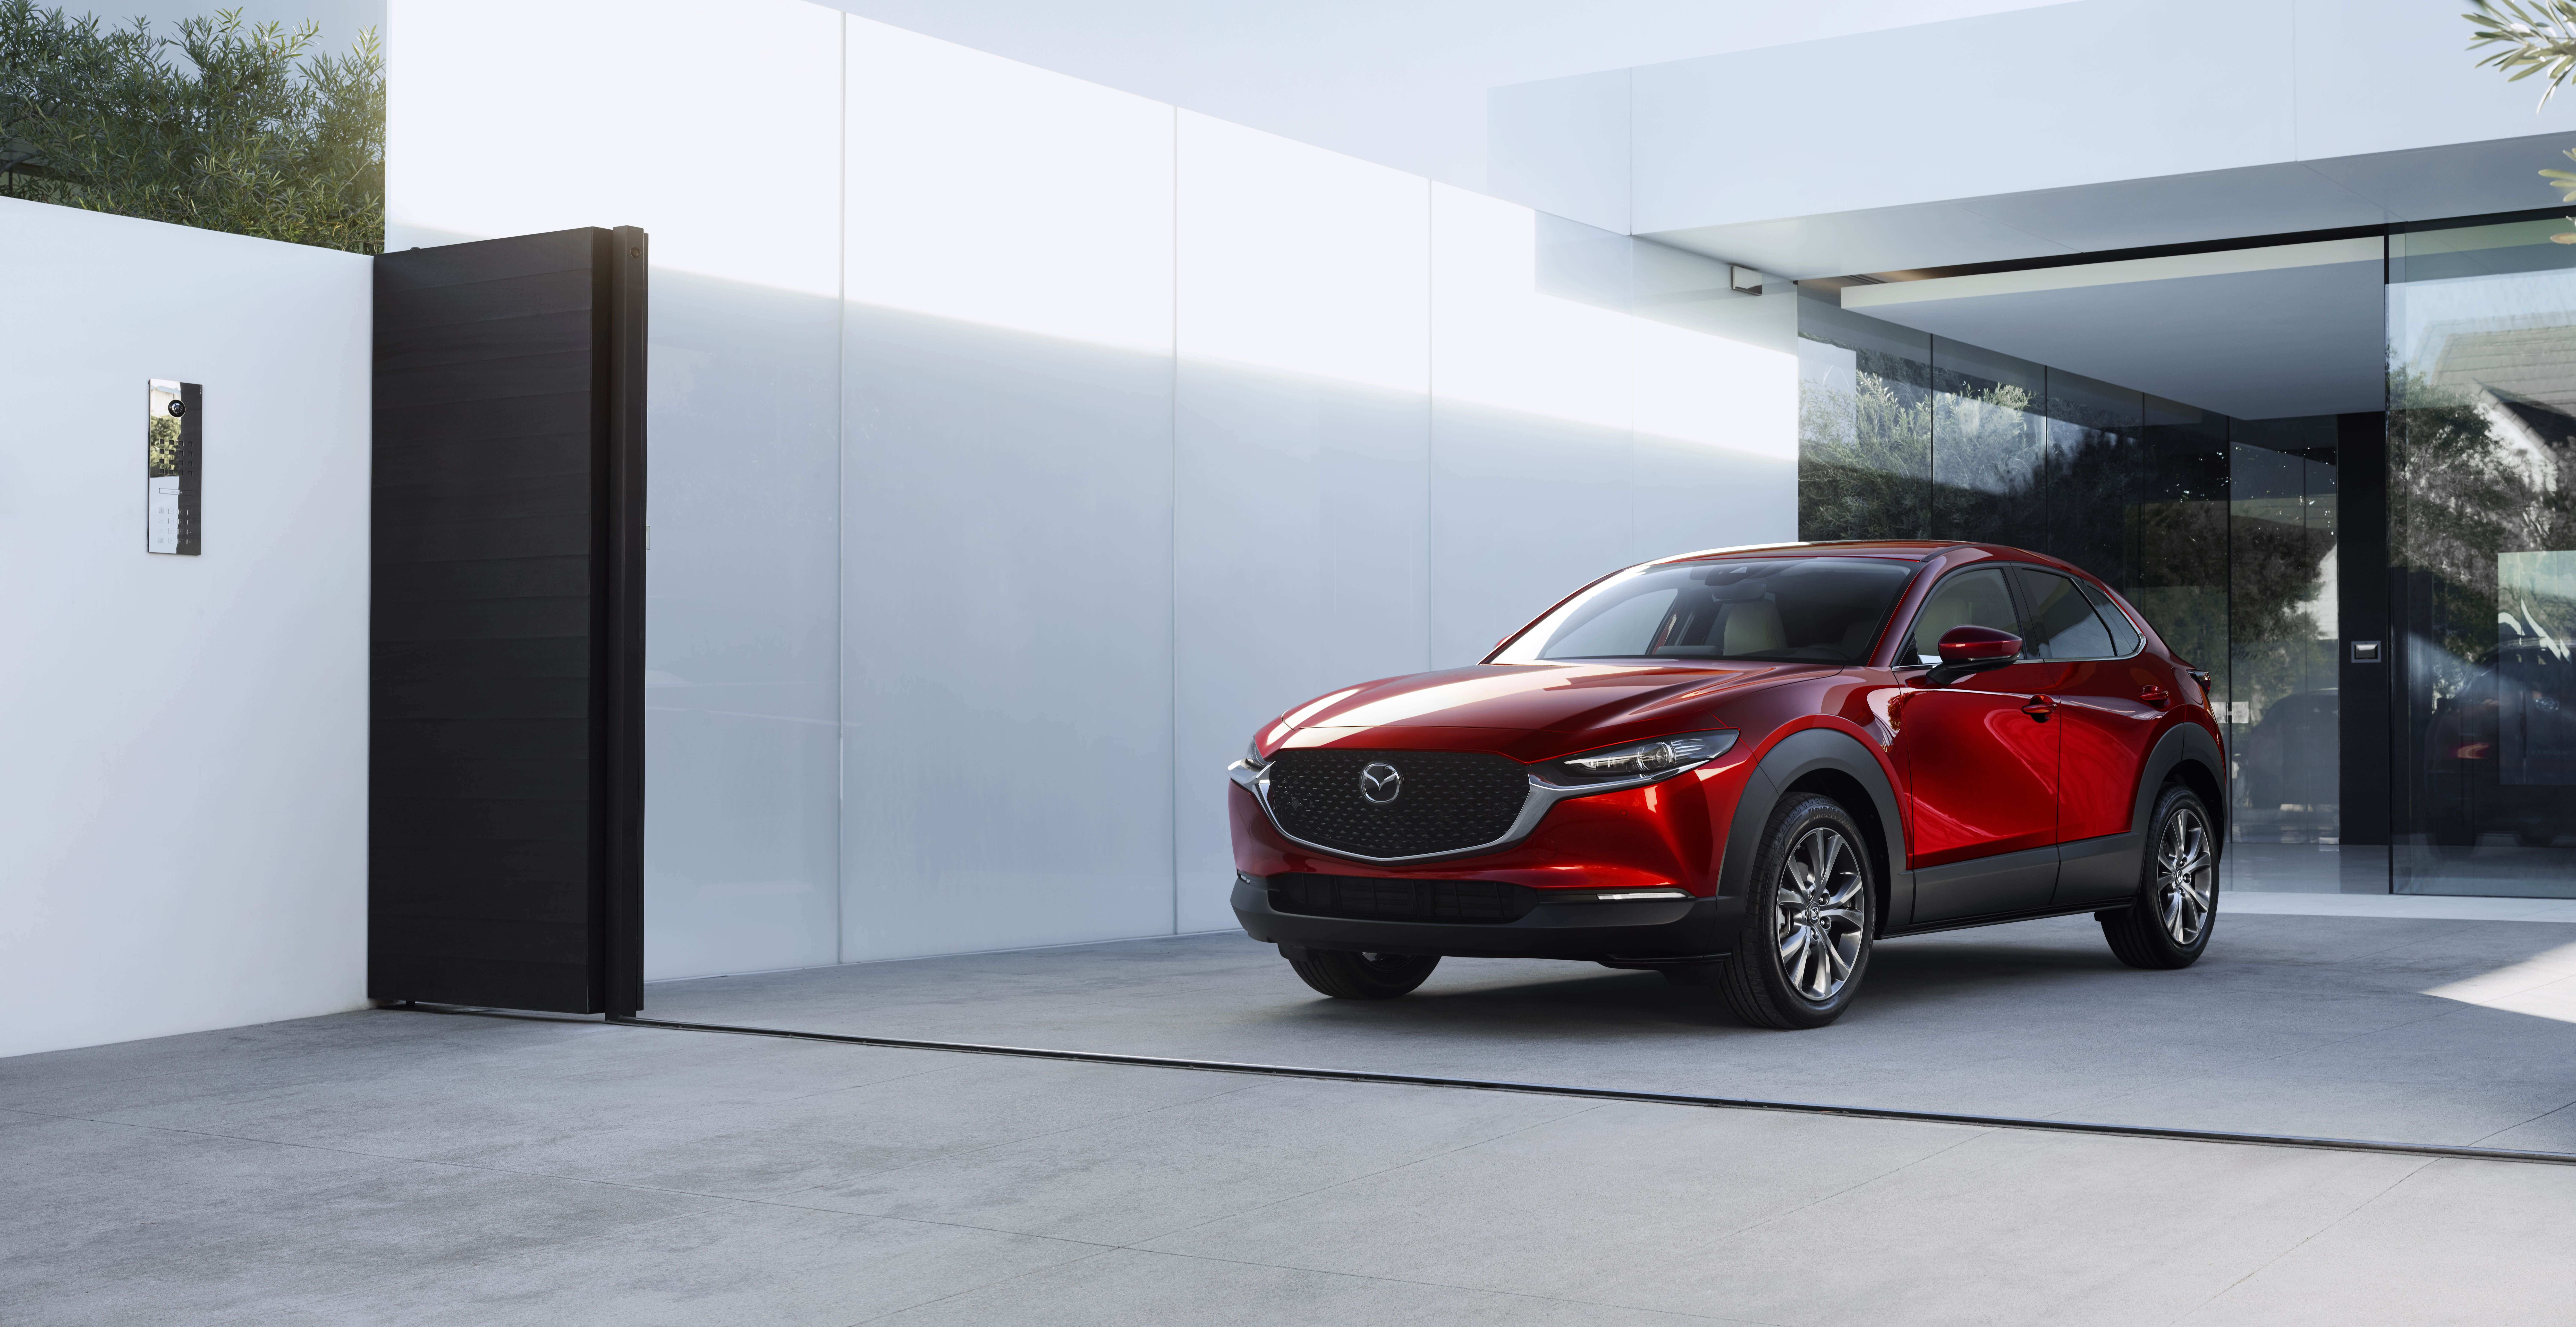 43 New 2020 Mazda X30 Research New for 2020 Mazda X30